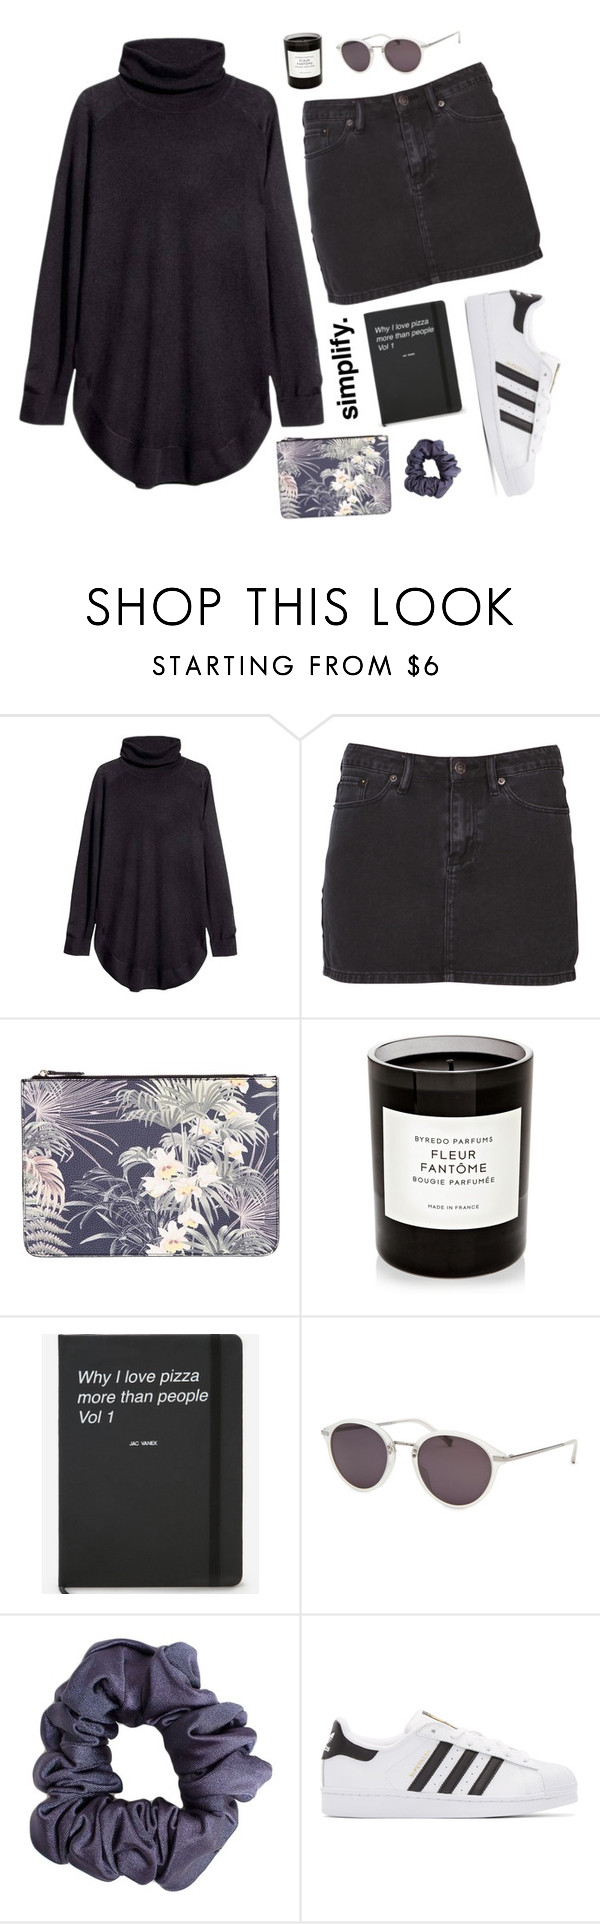 """""""Untitled #2014"""" by katerina-rampota ❤ liked on Polyvore featuring H&M, Ksubi, Warehouse, Byredo, Calvin Klein, American Apparel and adidas Originals"""